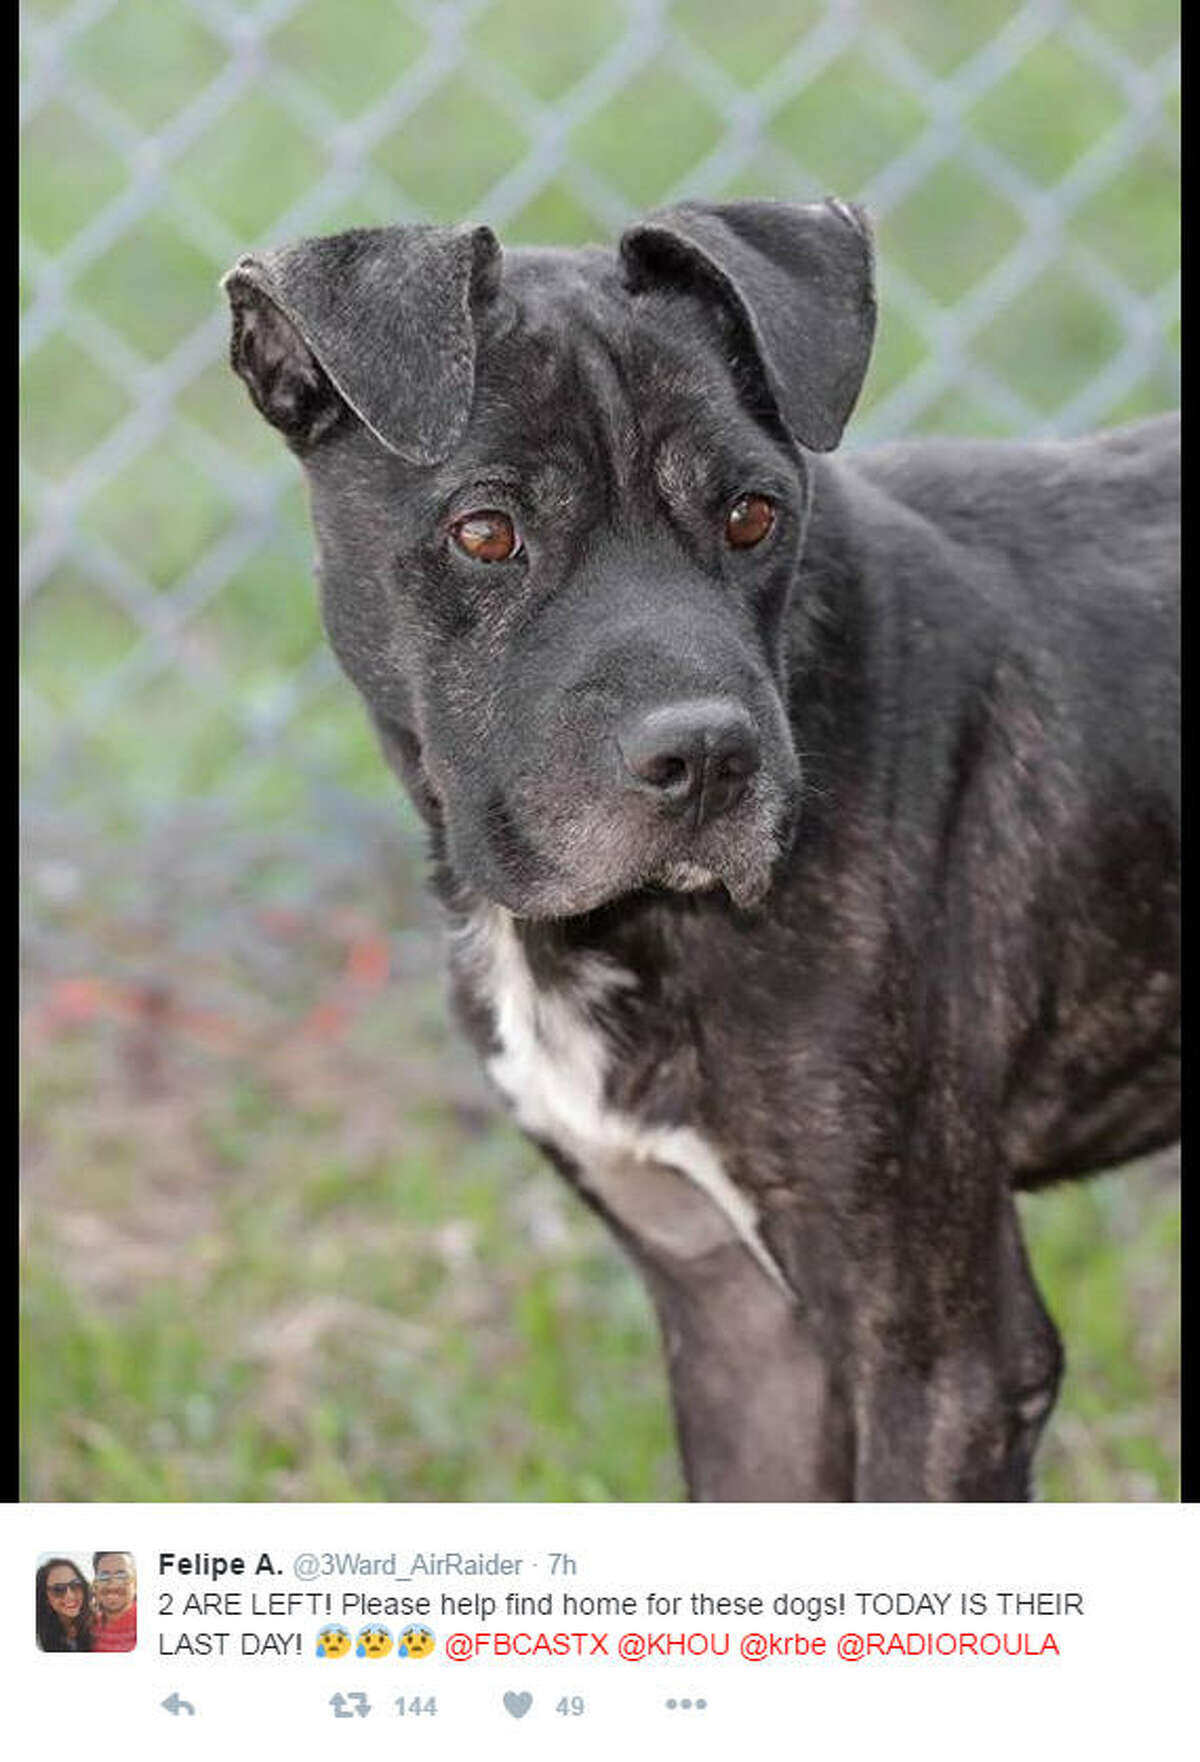 Squishy Face is a 18-month-old Staffordshire terrier/pit bull mix and needs to be adopted by Thanksgiving in order to avoid being put down.